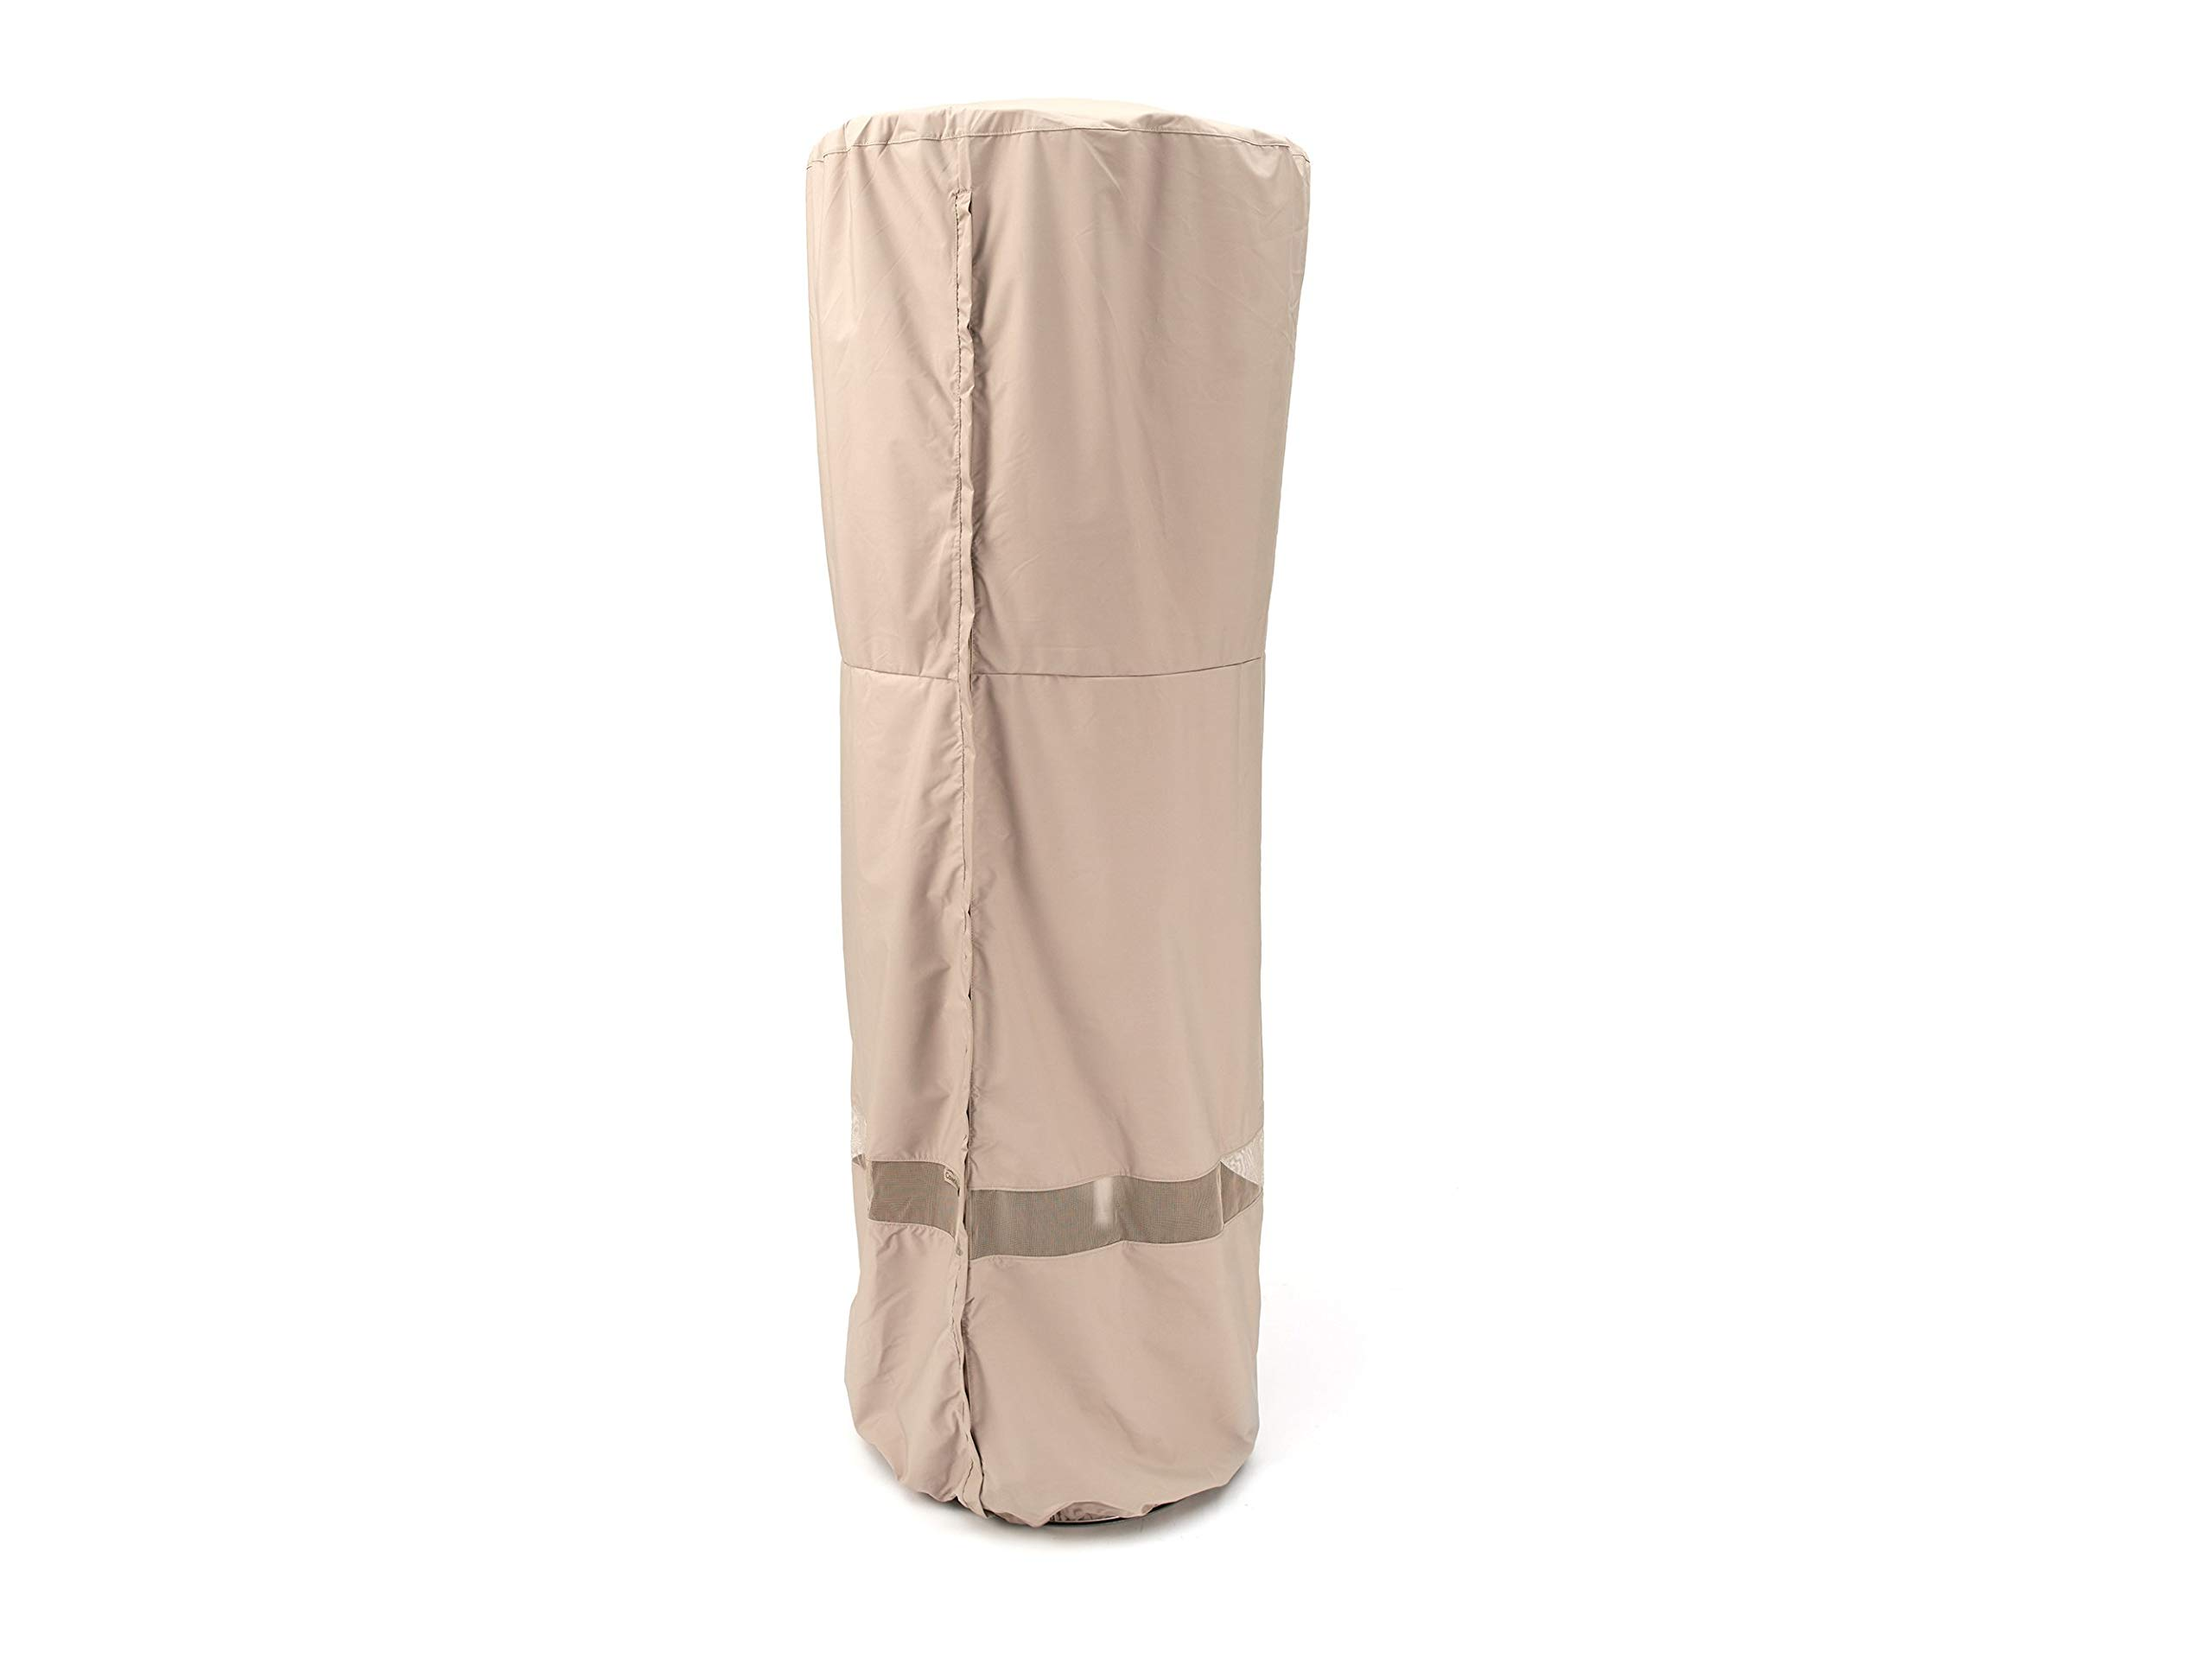 Covermates - Patio Heater Cover - 35DIAMETER x 87H - Elite Collection - 3 YR Warranty - Year Around Protection - Khaki by Covermates